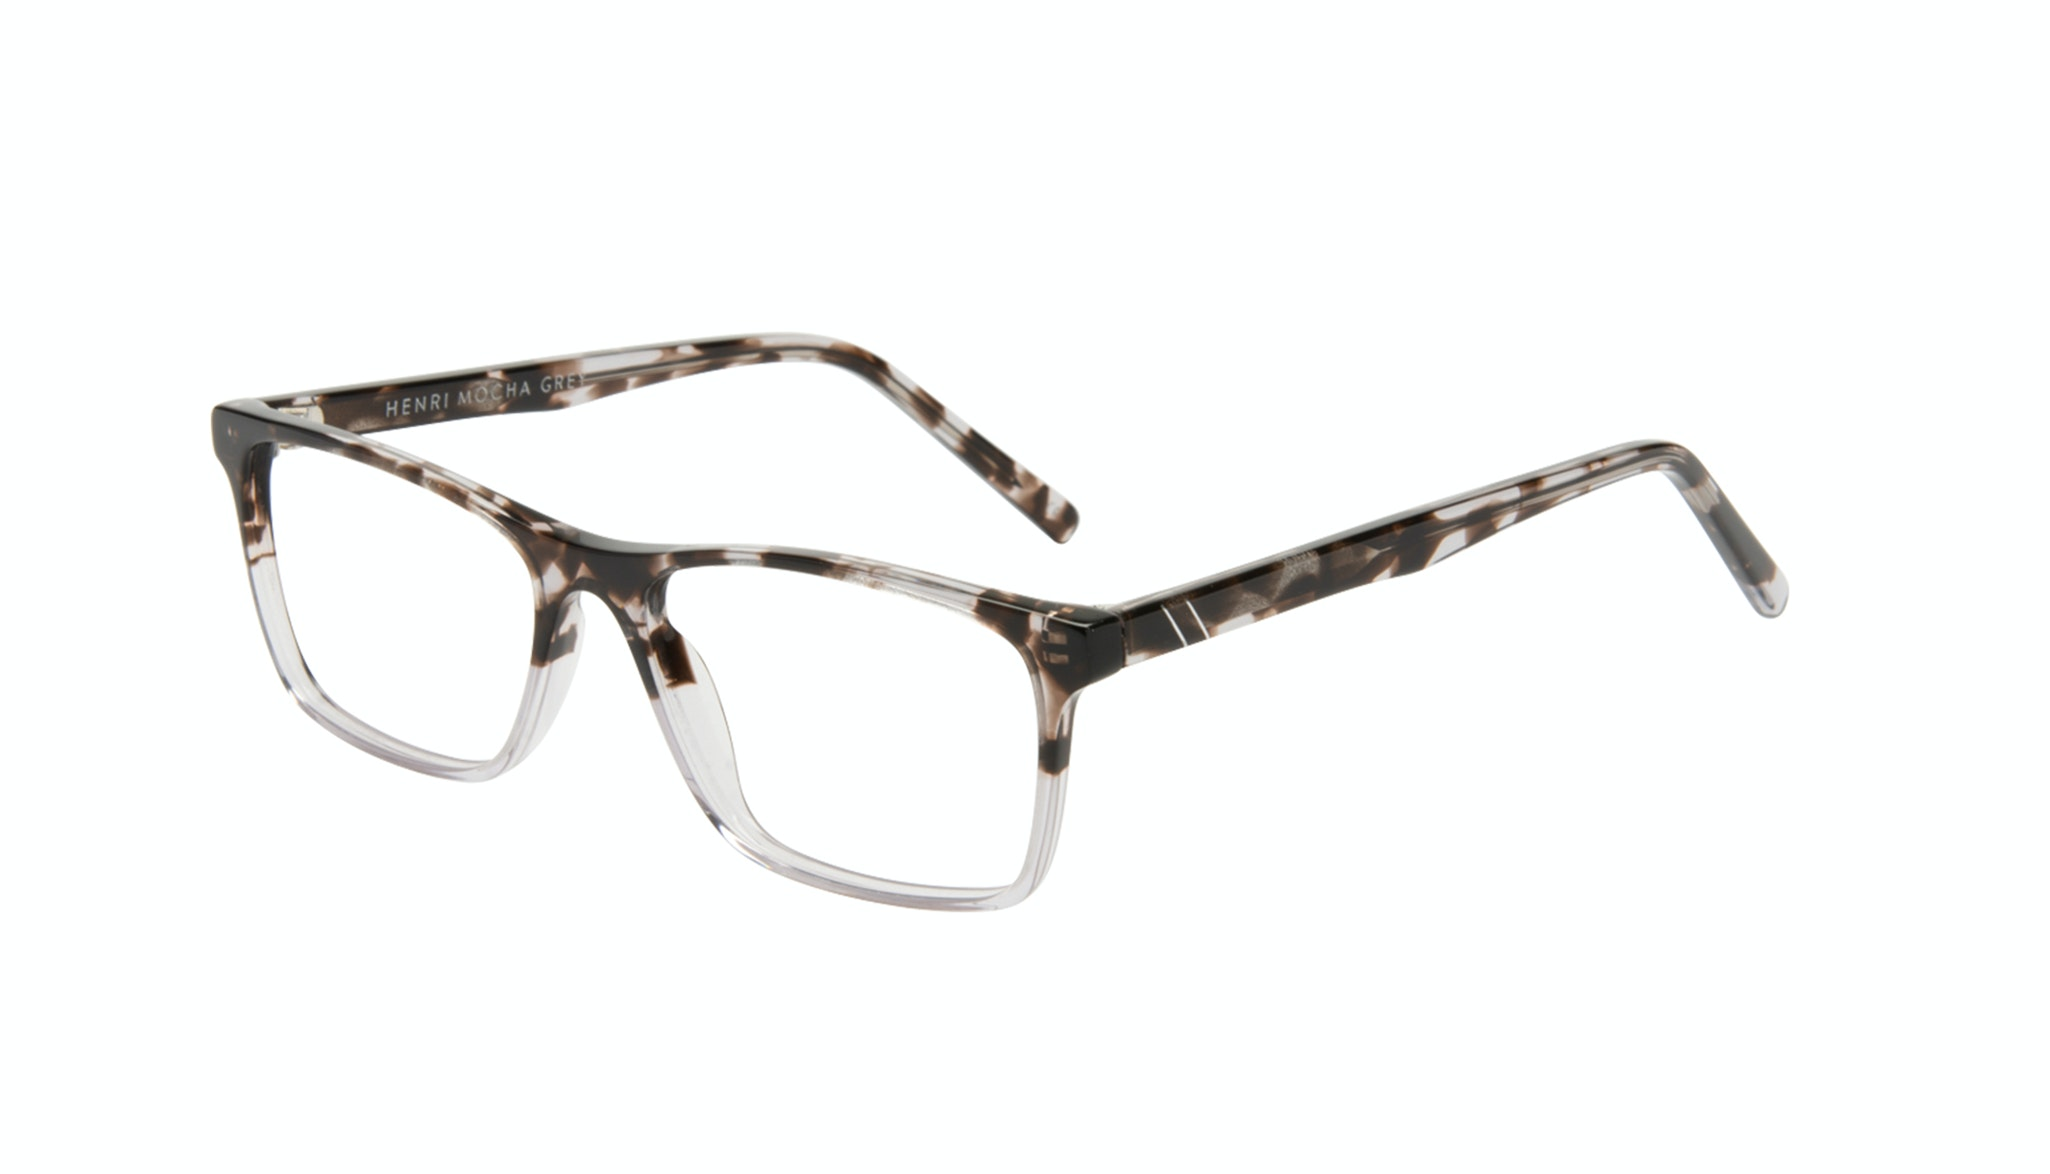 Affordable Fashion Glasses Rectangle Eyeglasses Men Henri Mocha Grey Tilt